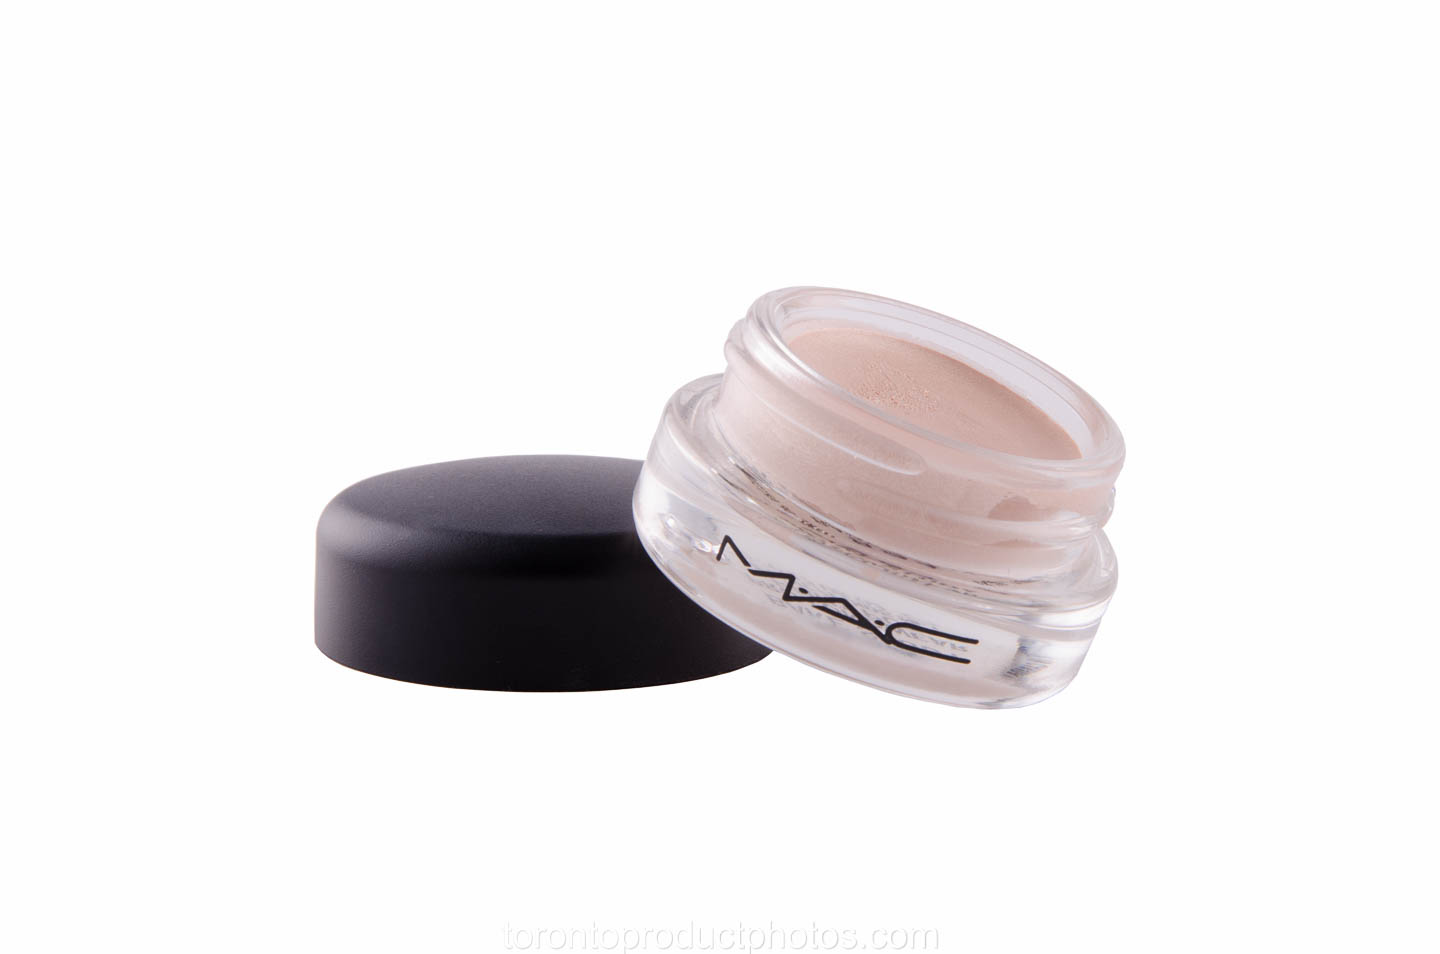 Mac Blush Product Photo on white background